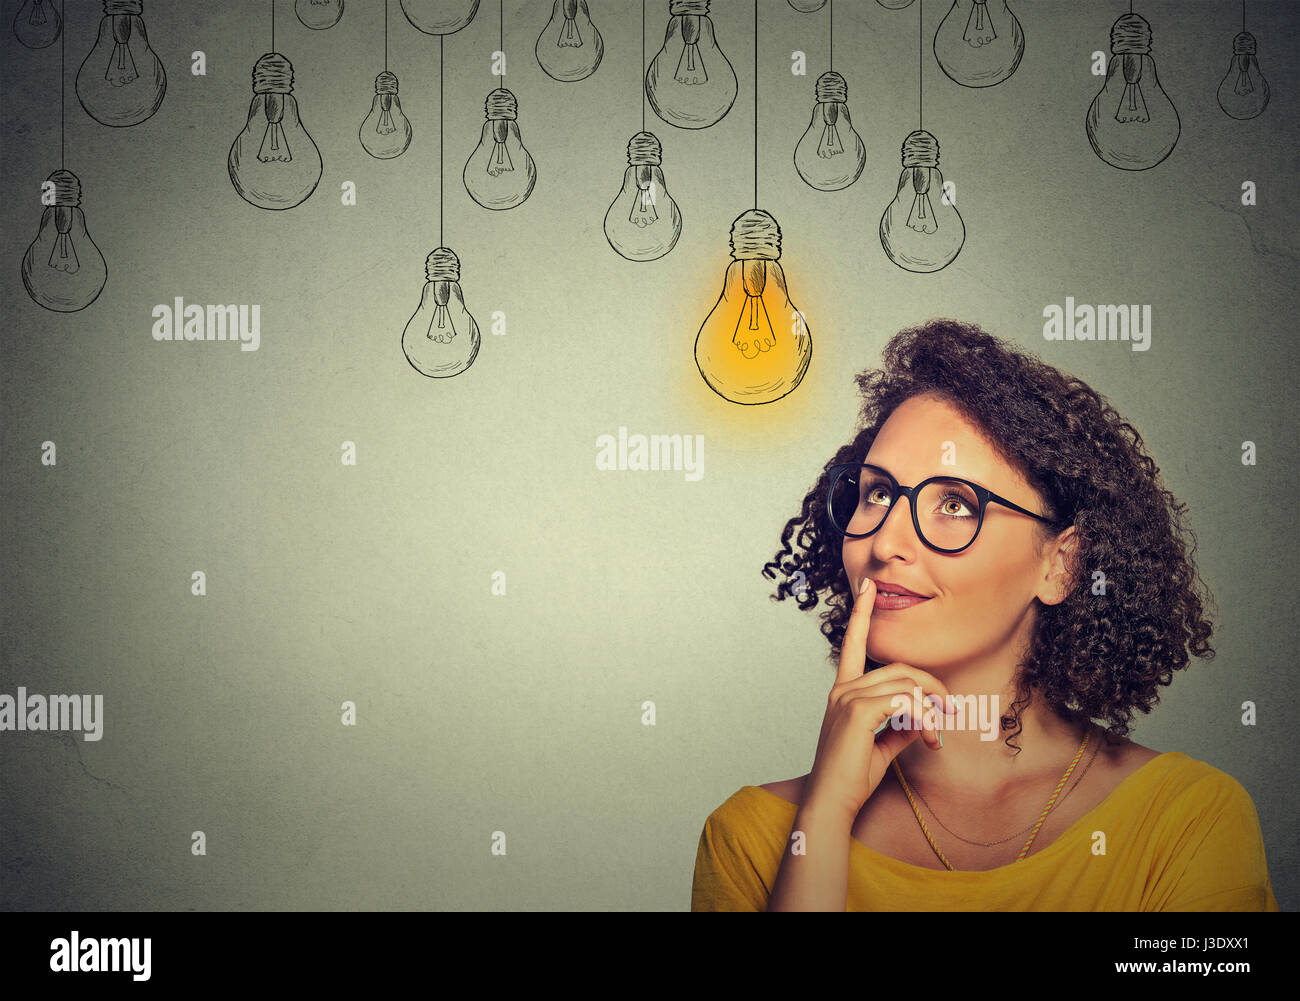 Portrait thinking woman in glasses looking up with light idea bulb above head isolated on gray wall background - Stock Image